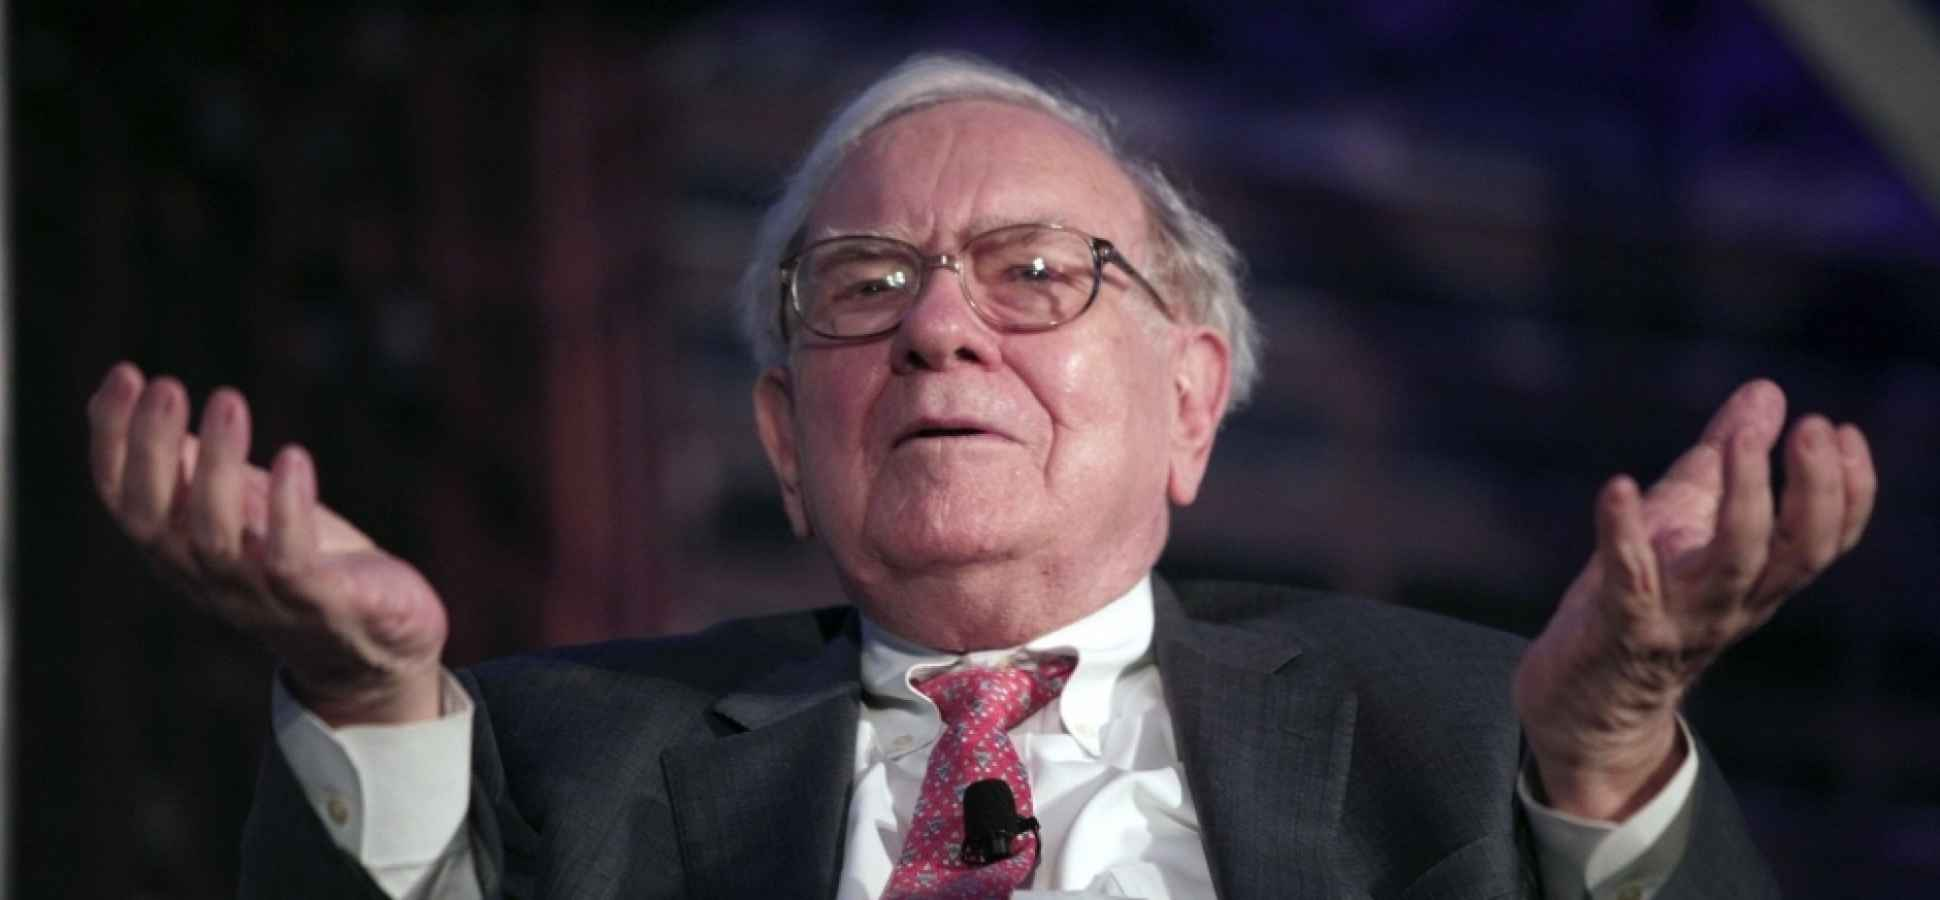 17 Warren Buffett Quotes That Will Inspire You to Remarkable Success and Happiness